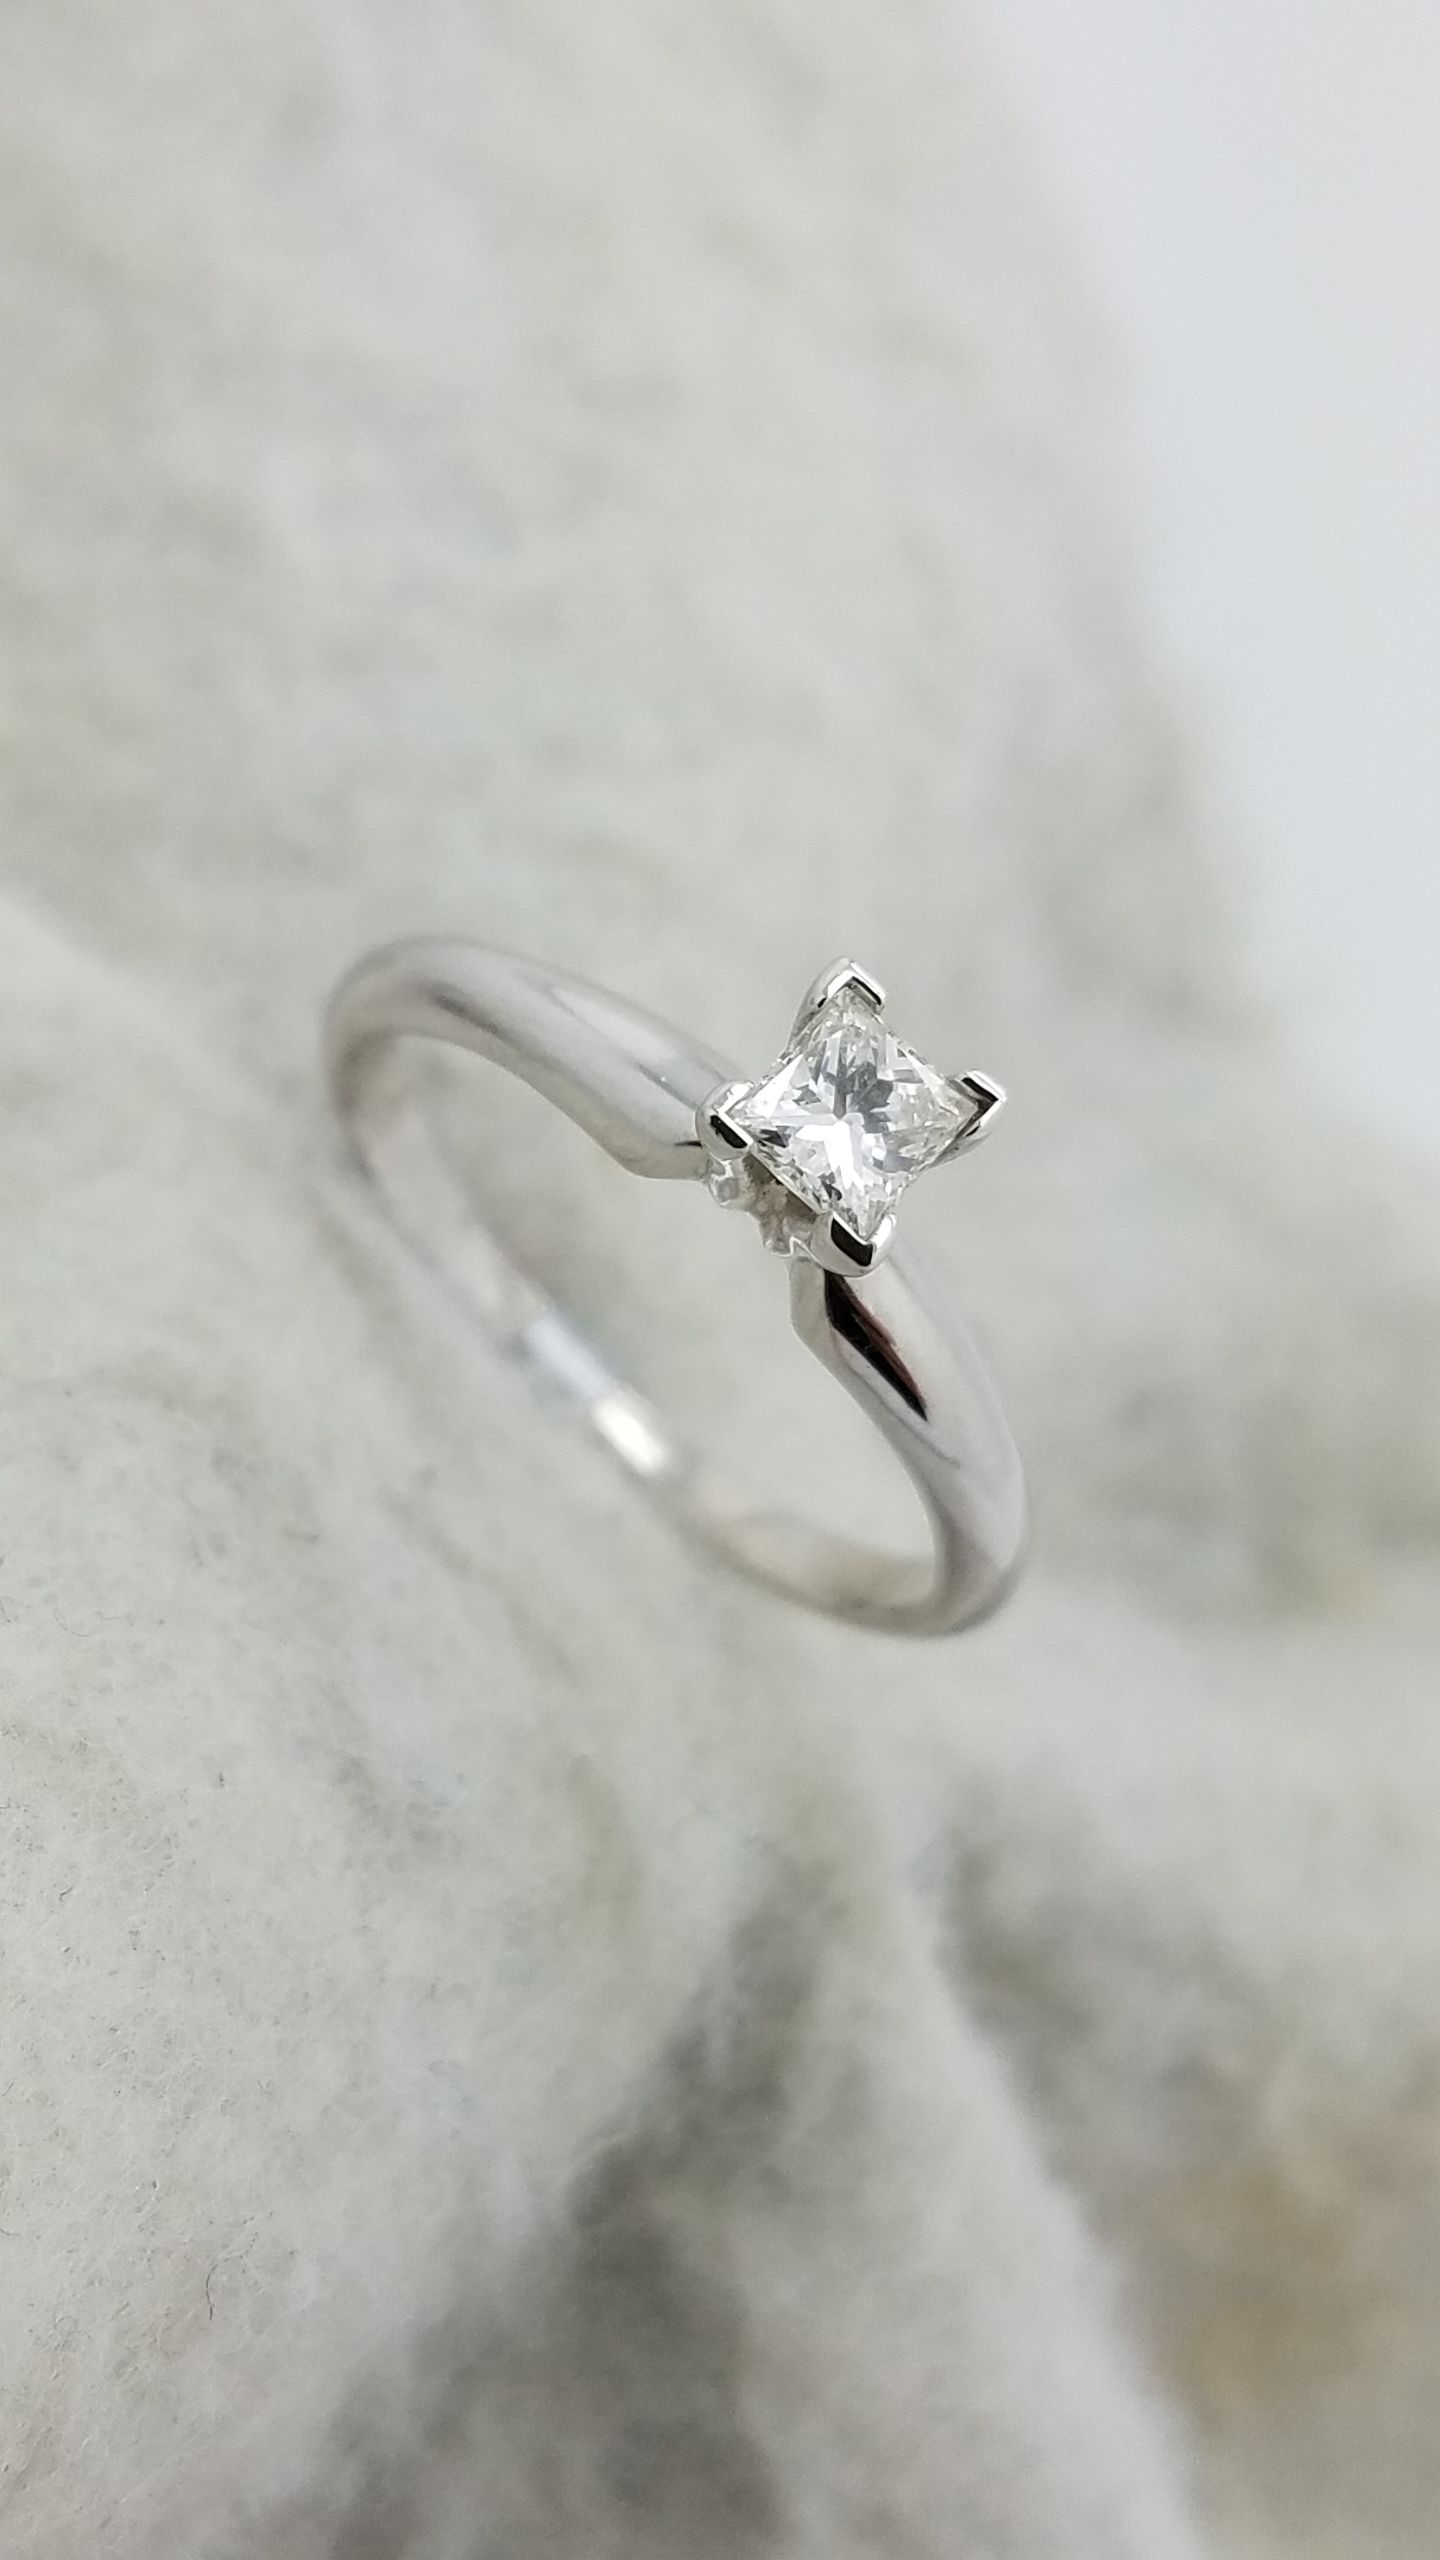 14K White Gold CLASSIC 0 25 ct Princess Cut Diamond H VS2 4 prong